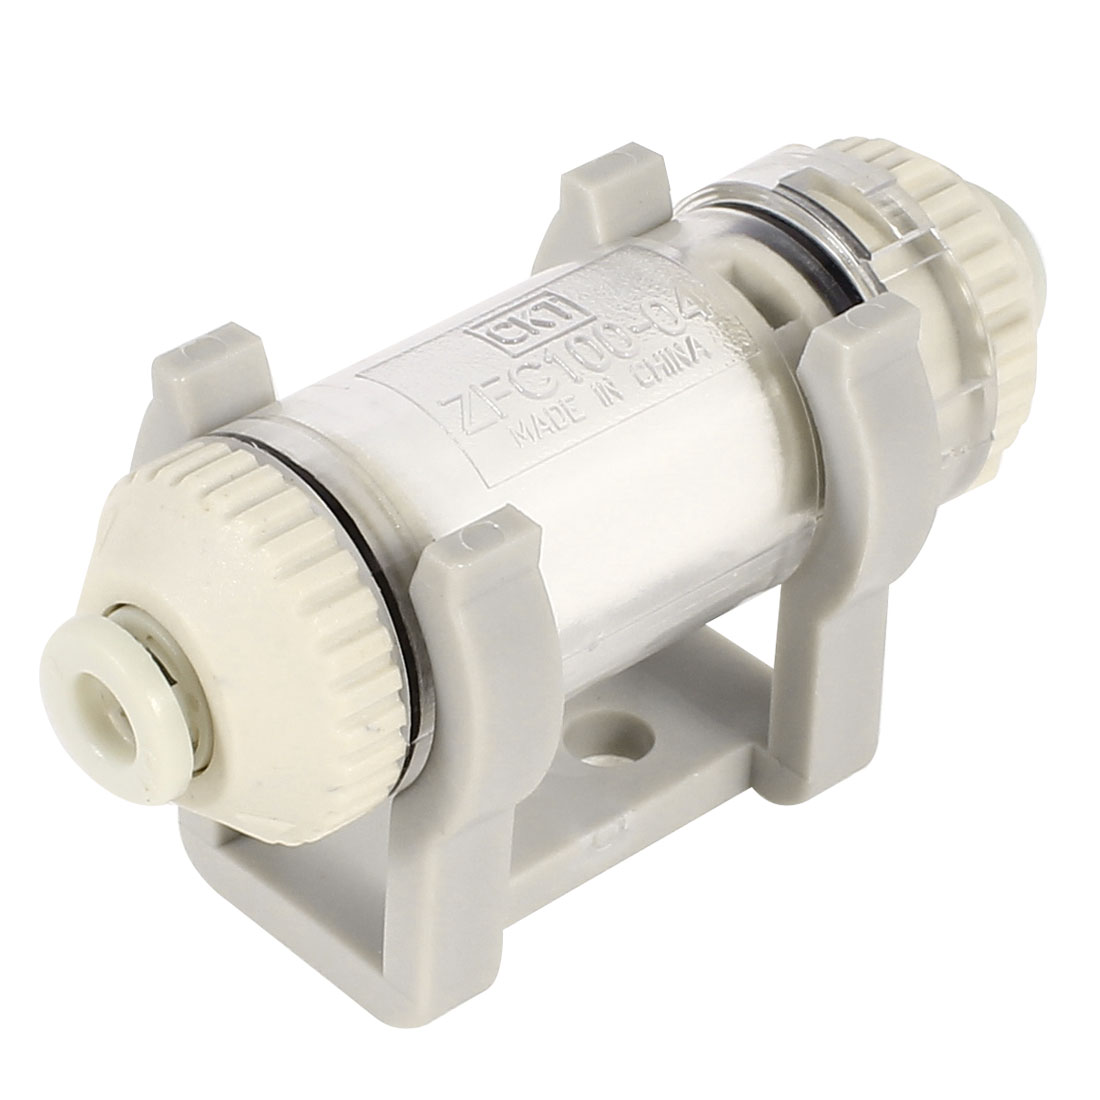 ZFC100-04-B 4mm OD Tube Push in Quick Connector In Line Vacuum Air Suction Filter